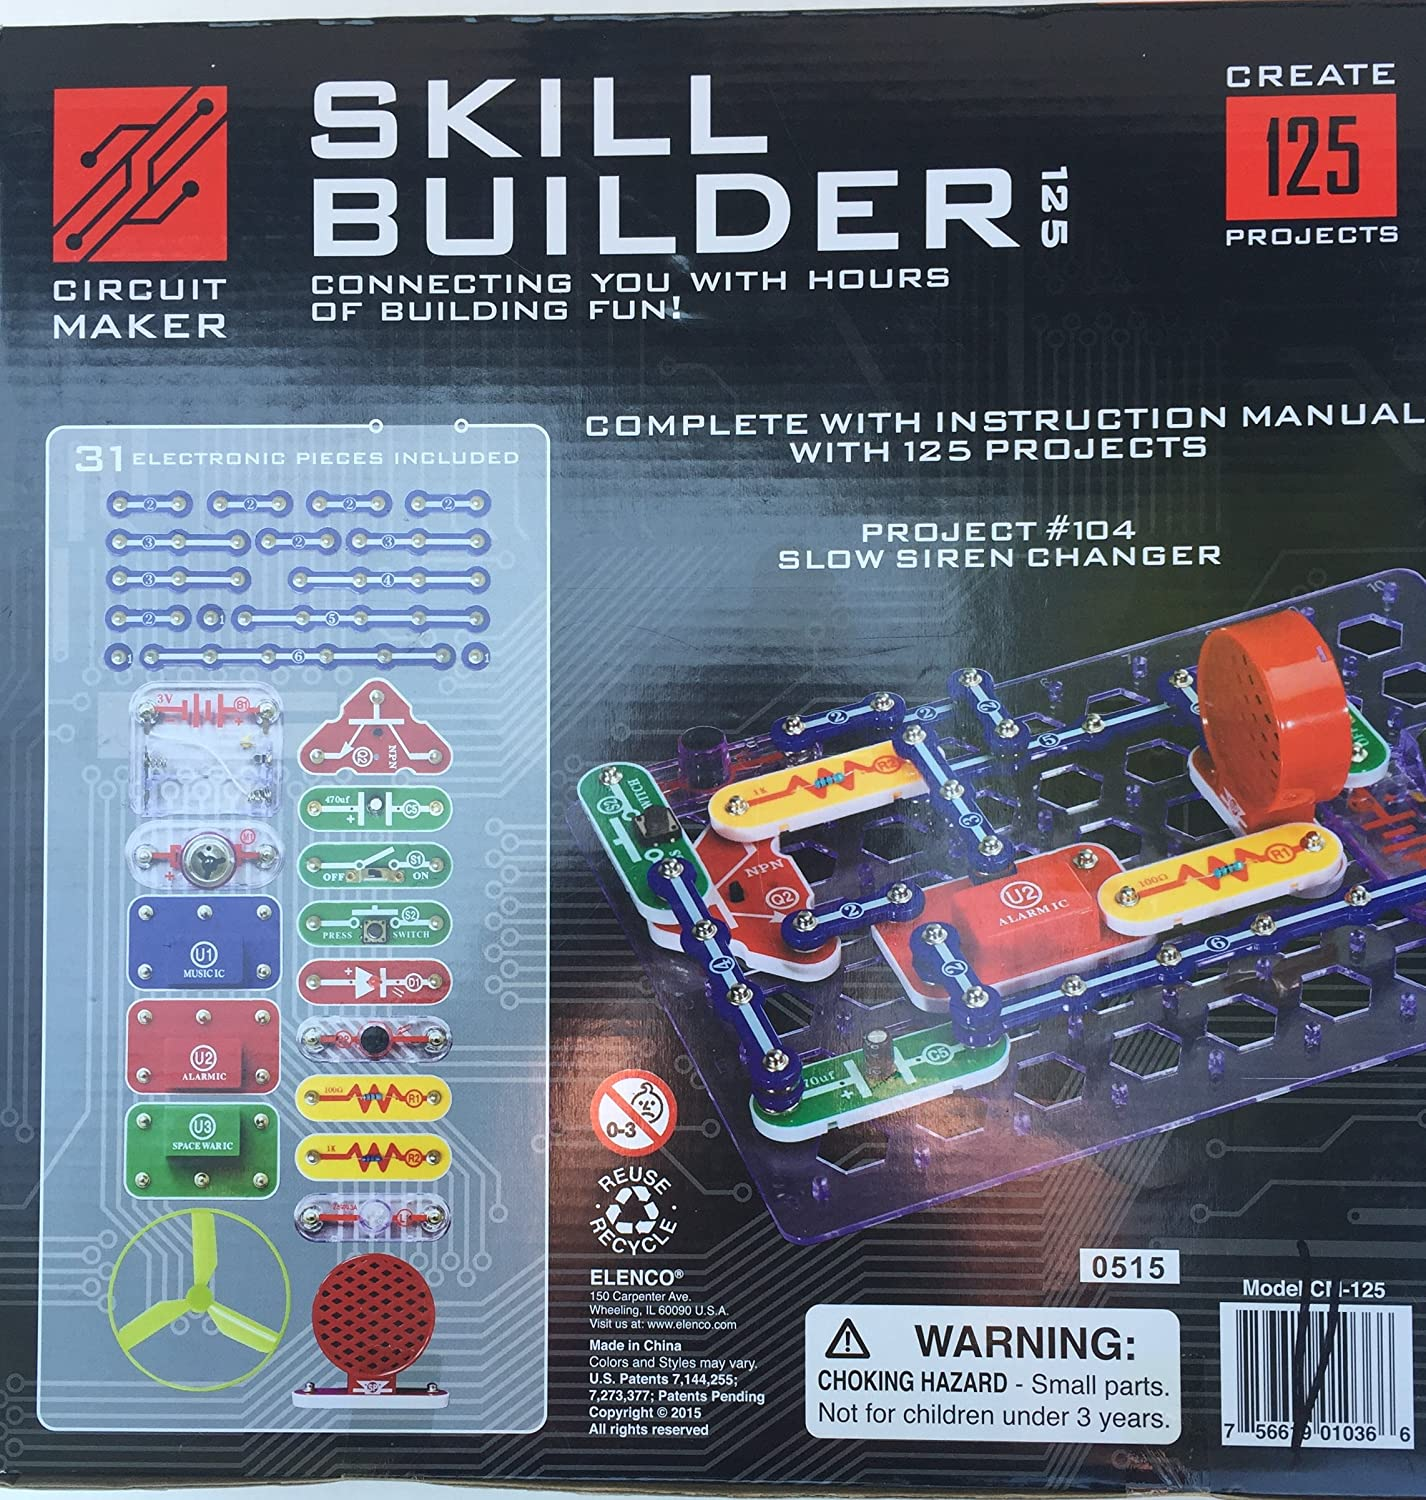 Elenco Circuit Maker Skill Builder Toys Games Electronic Snap Circuits Pro Kit Electronics Handson Curriculum